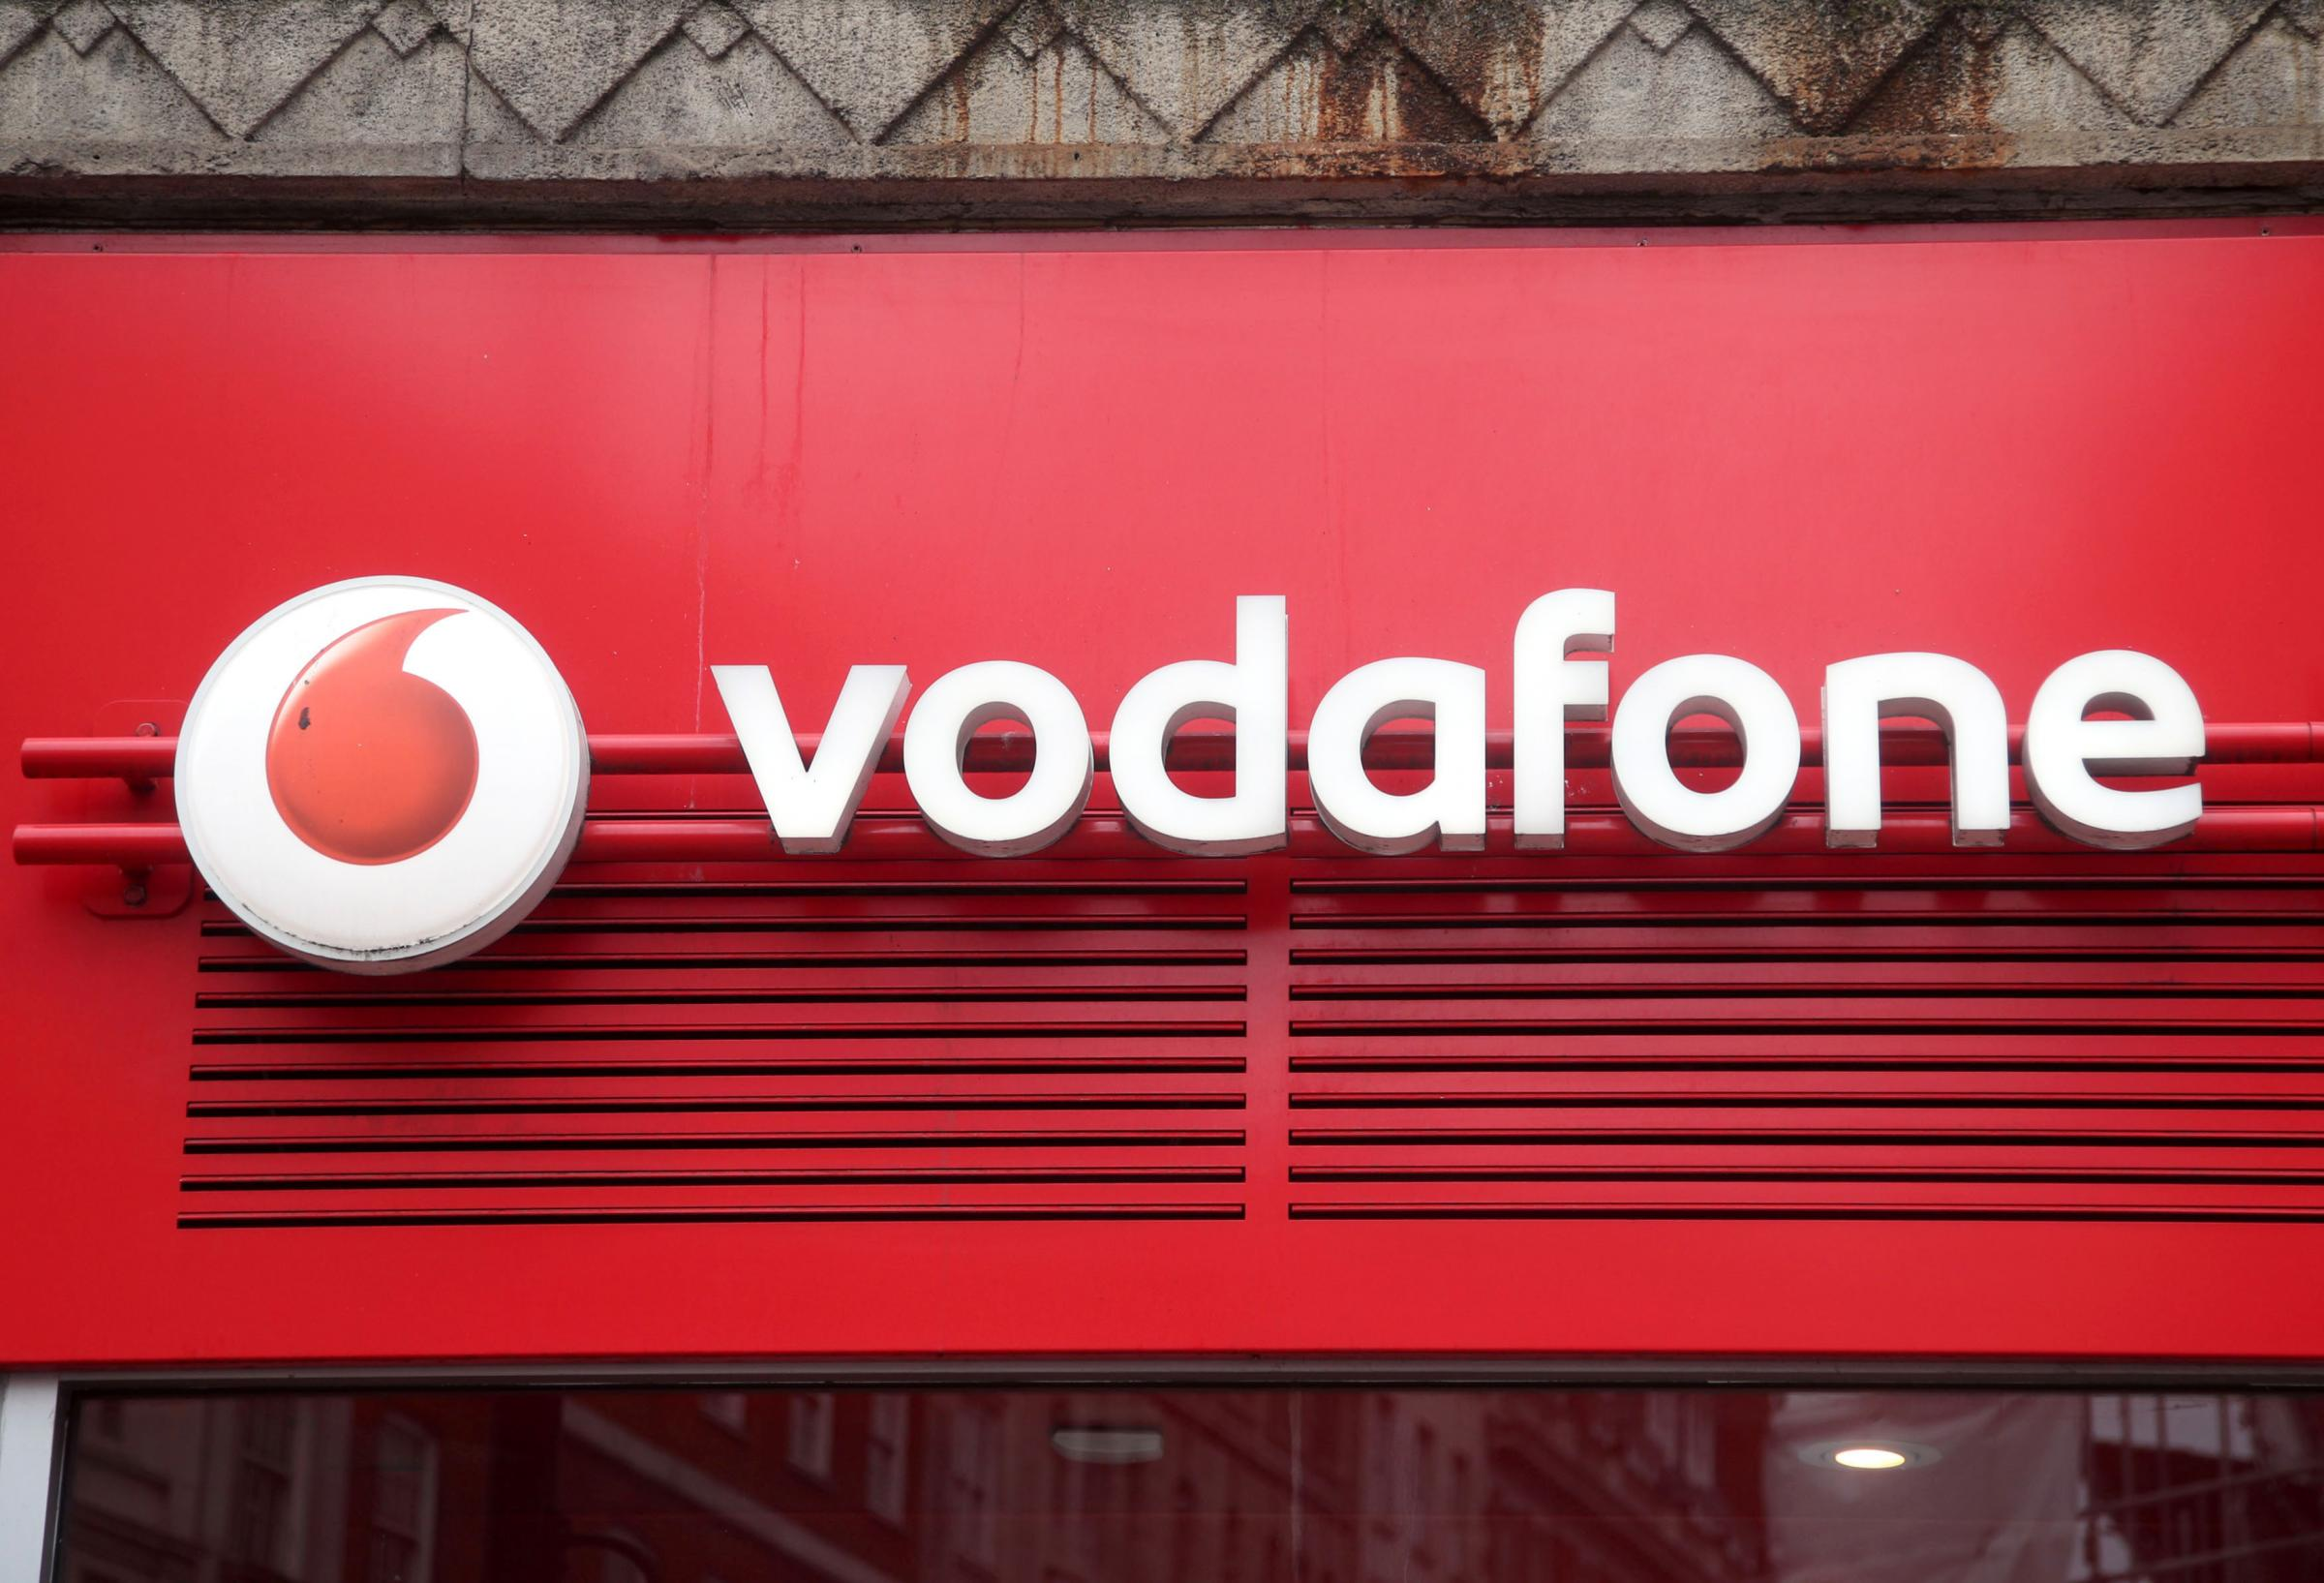 Vodafone adverts banned